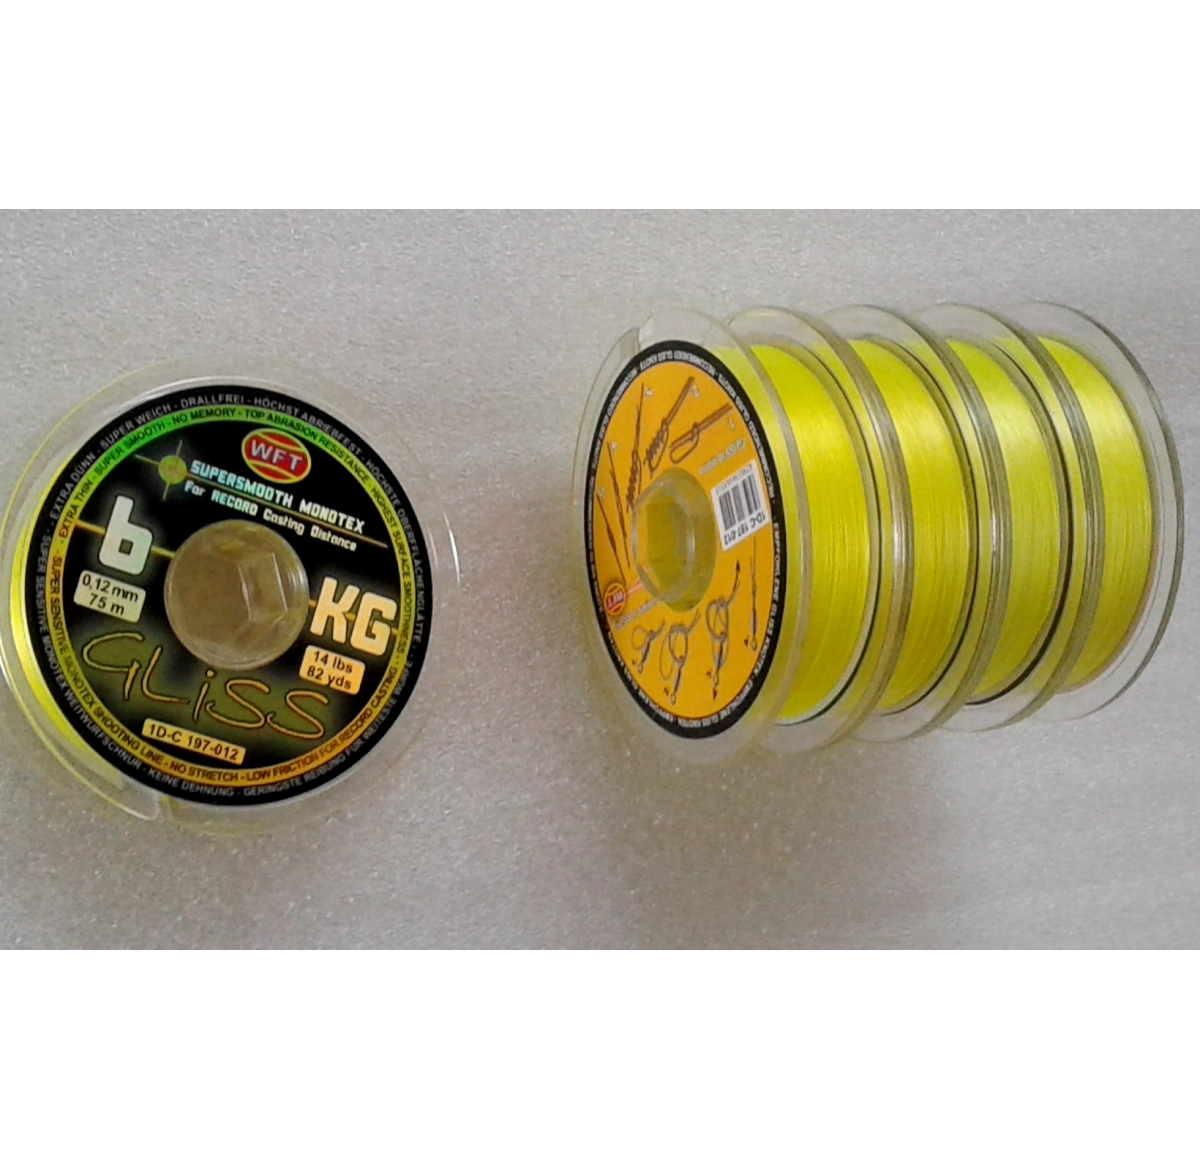 WFT GLISS 6KG Monotex Yellow 75m 0.12mm